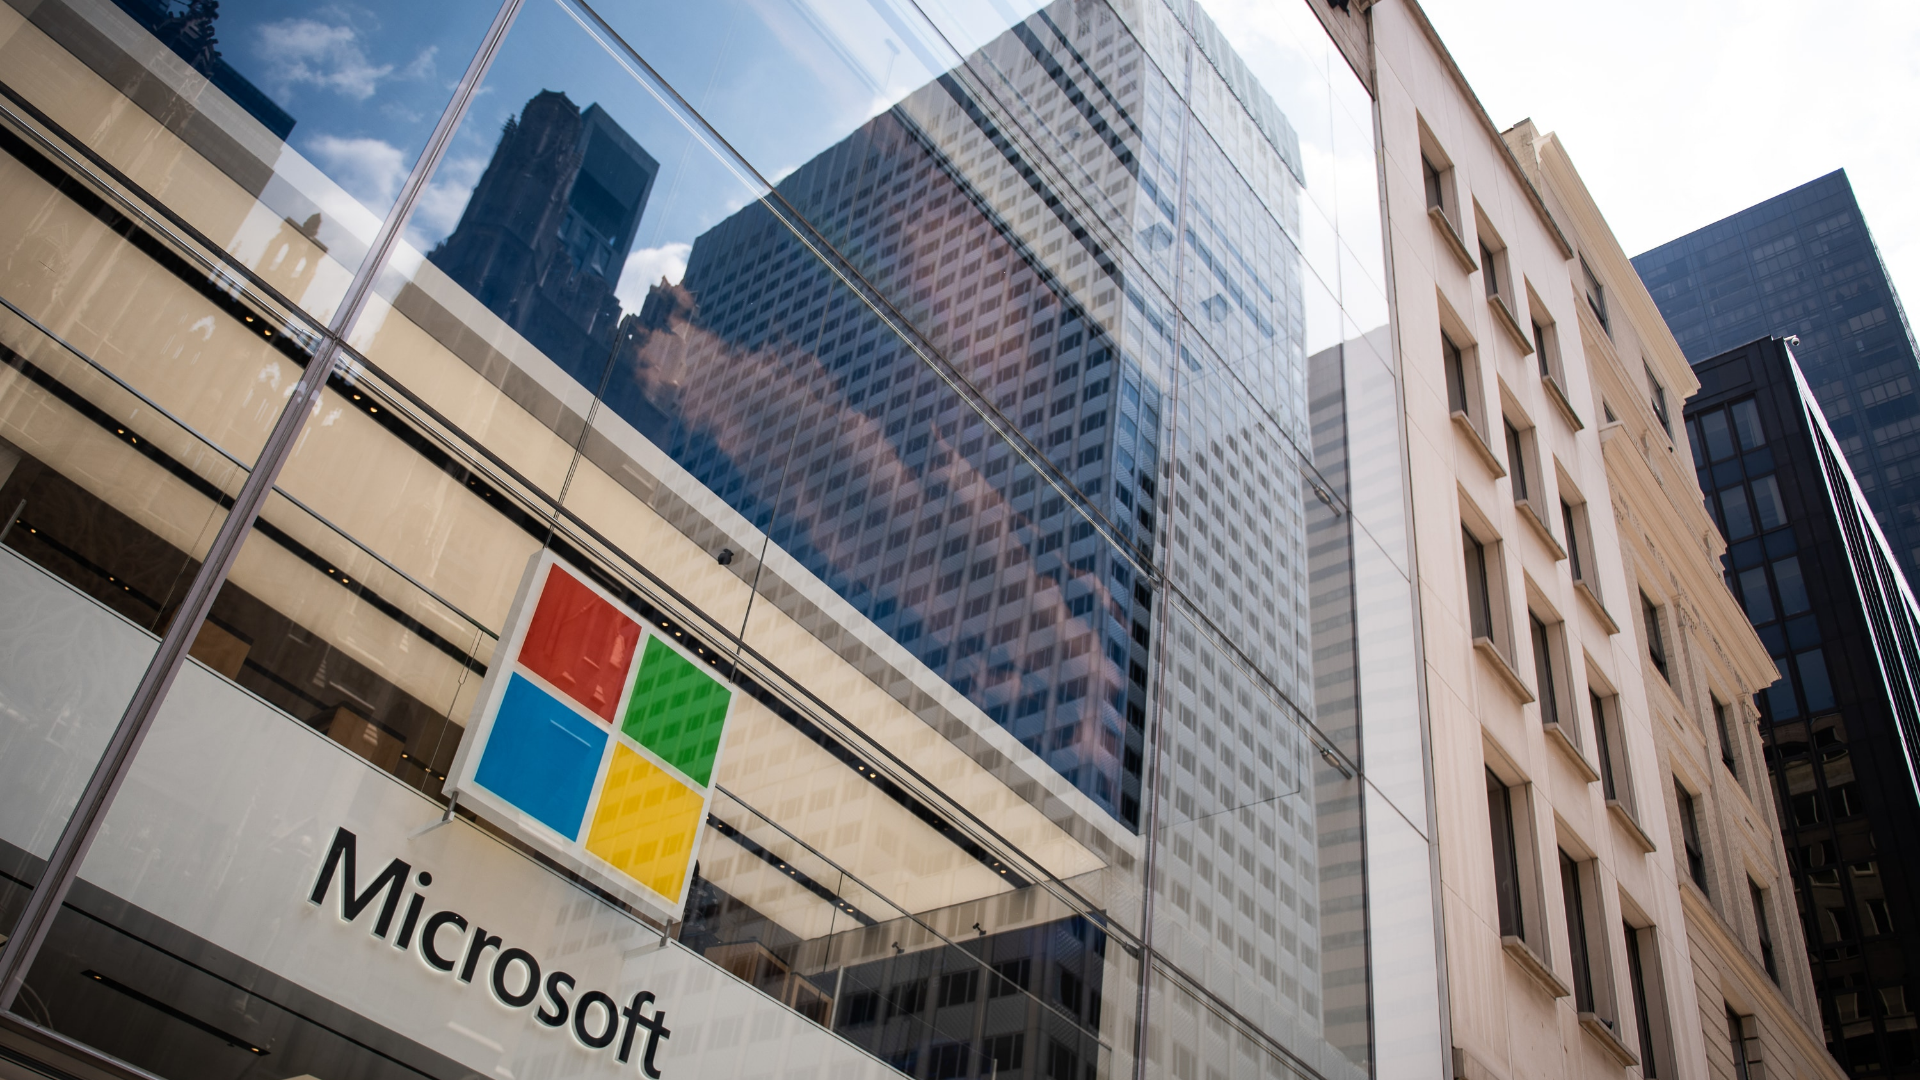 Microsoft says it has found a Russian operation targeting U.S. political institutions